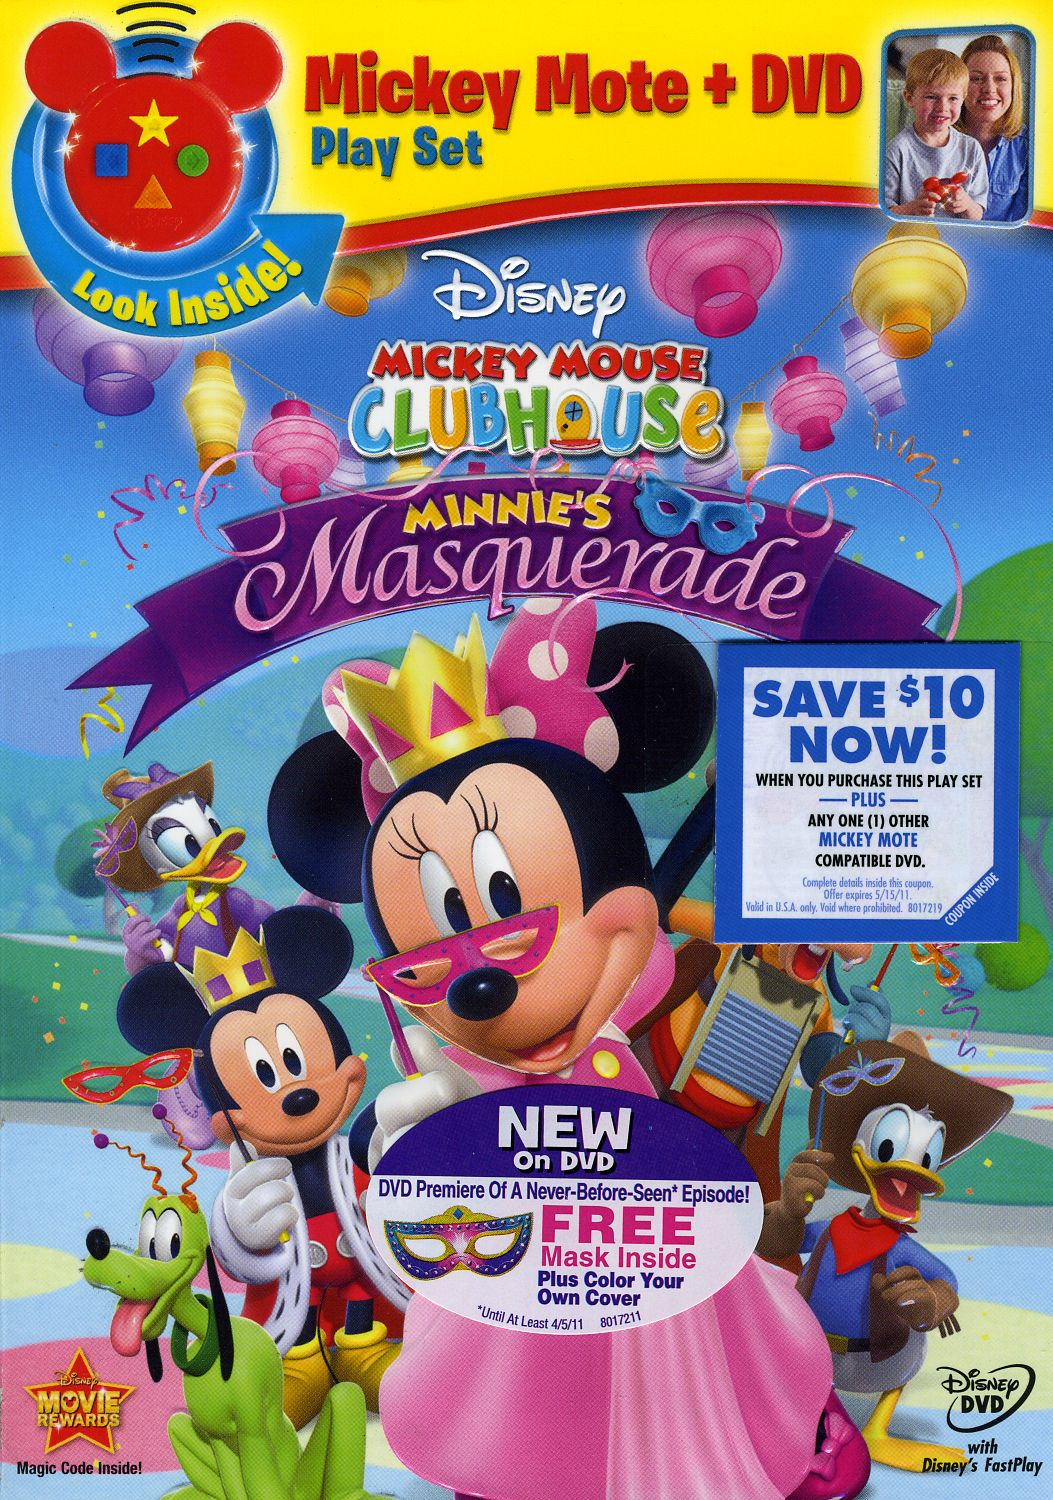 Mickey Mouse Clubhouse: Minnie's Masquerade - With Mickey Mote (DVD)